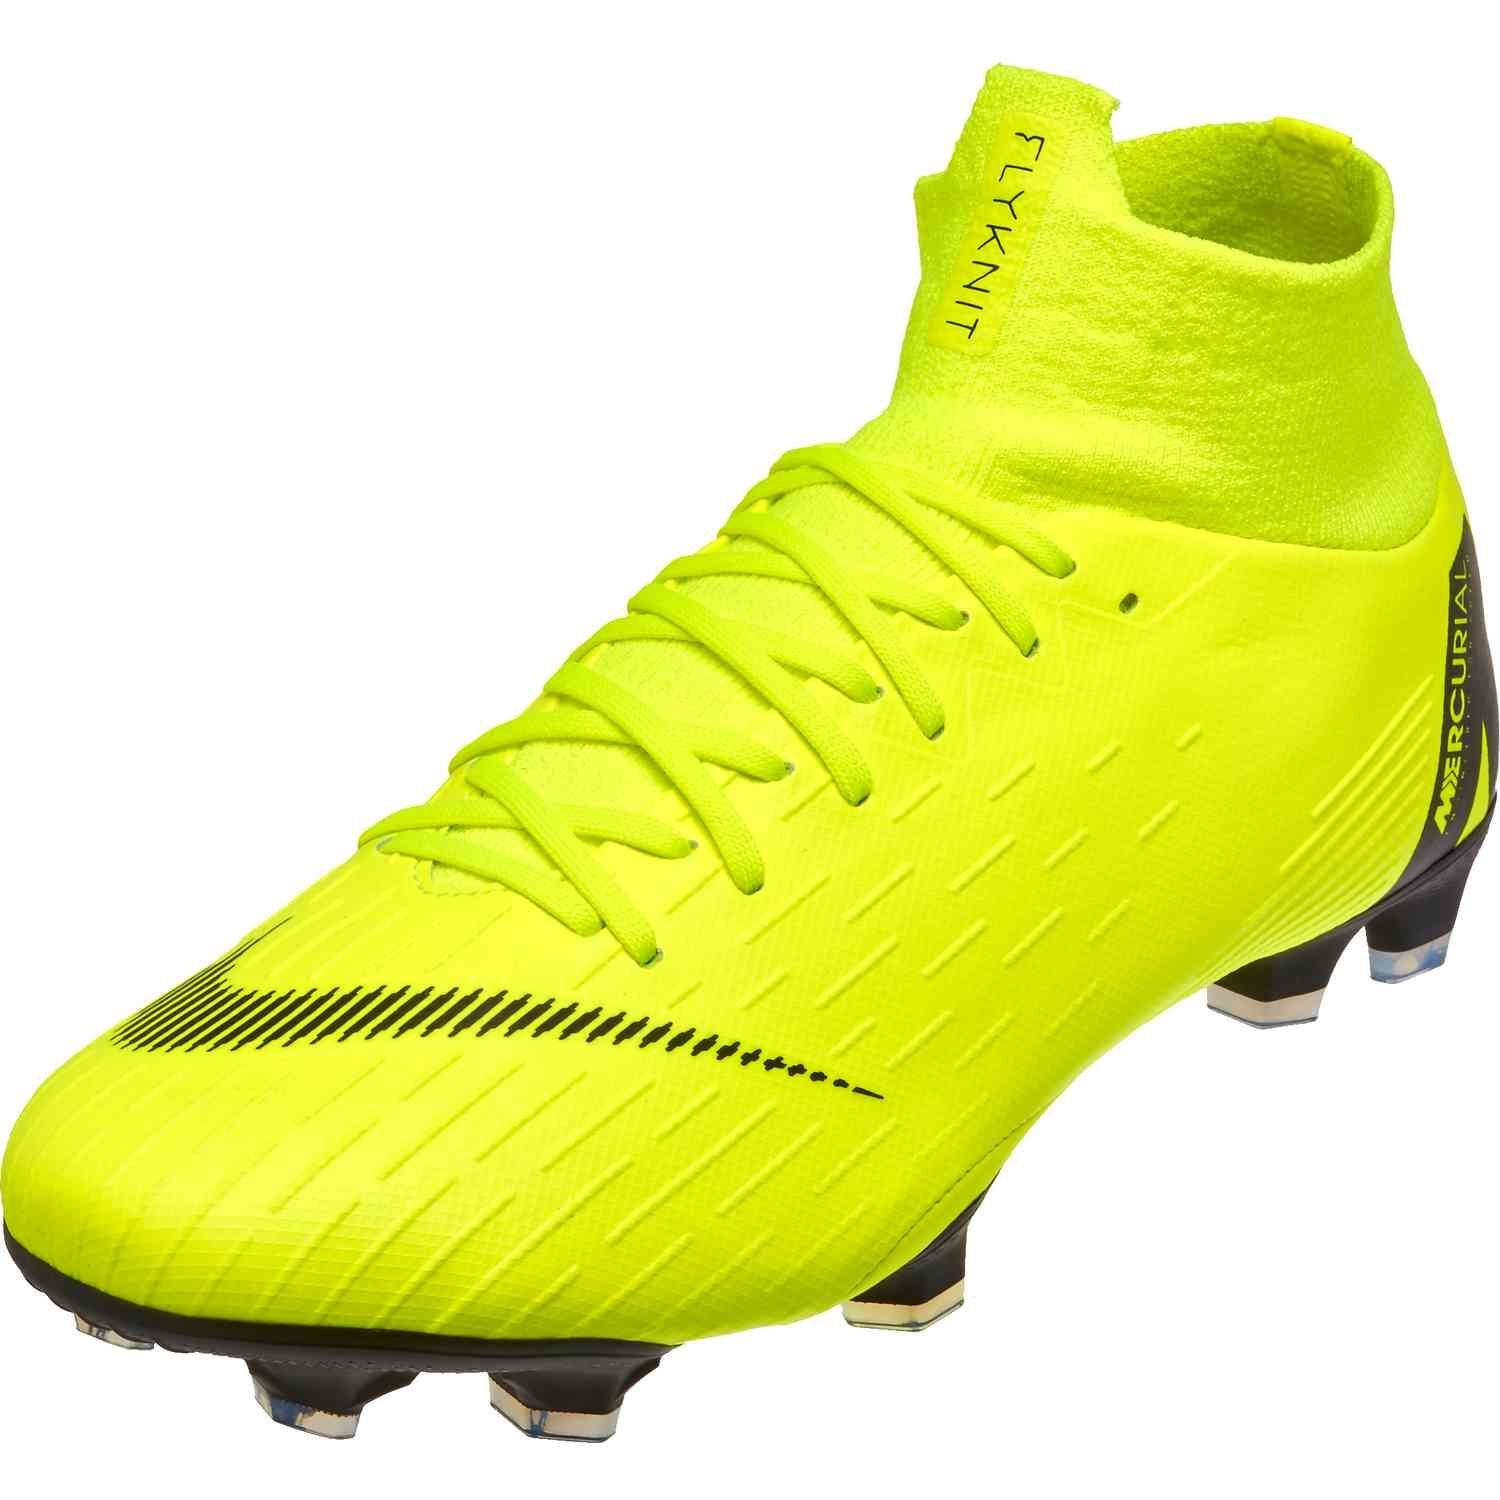 dc9e3e344 Nike Mercurial Superfly 6 Elite FG – Volt Black